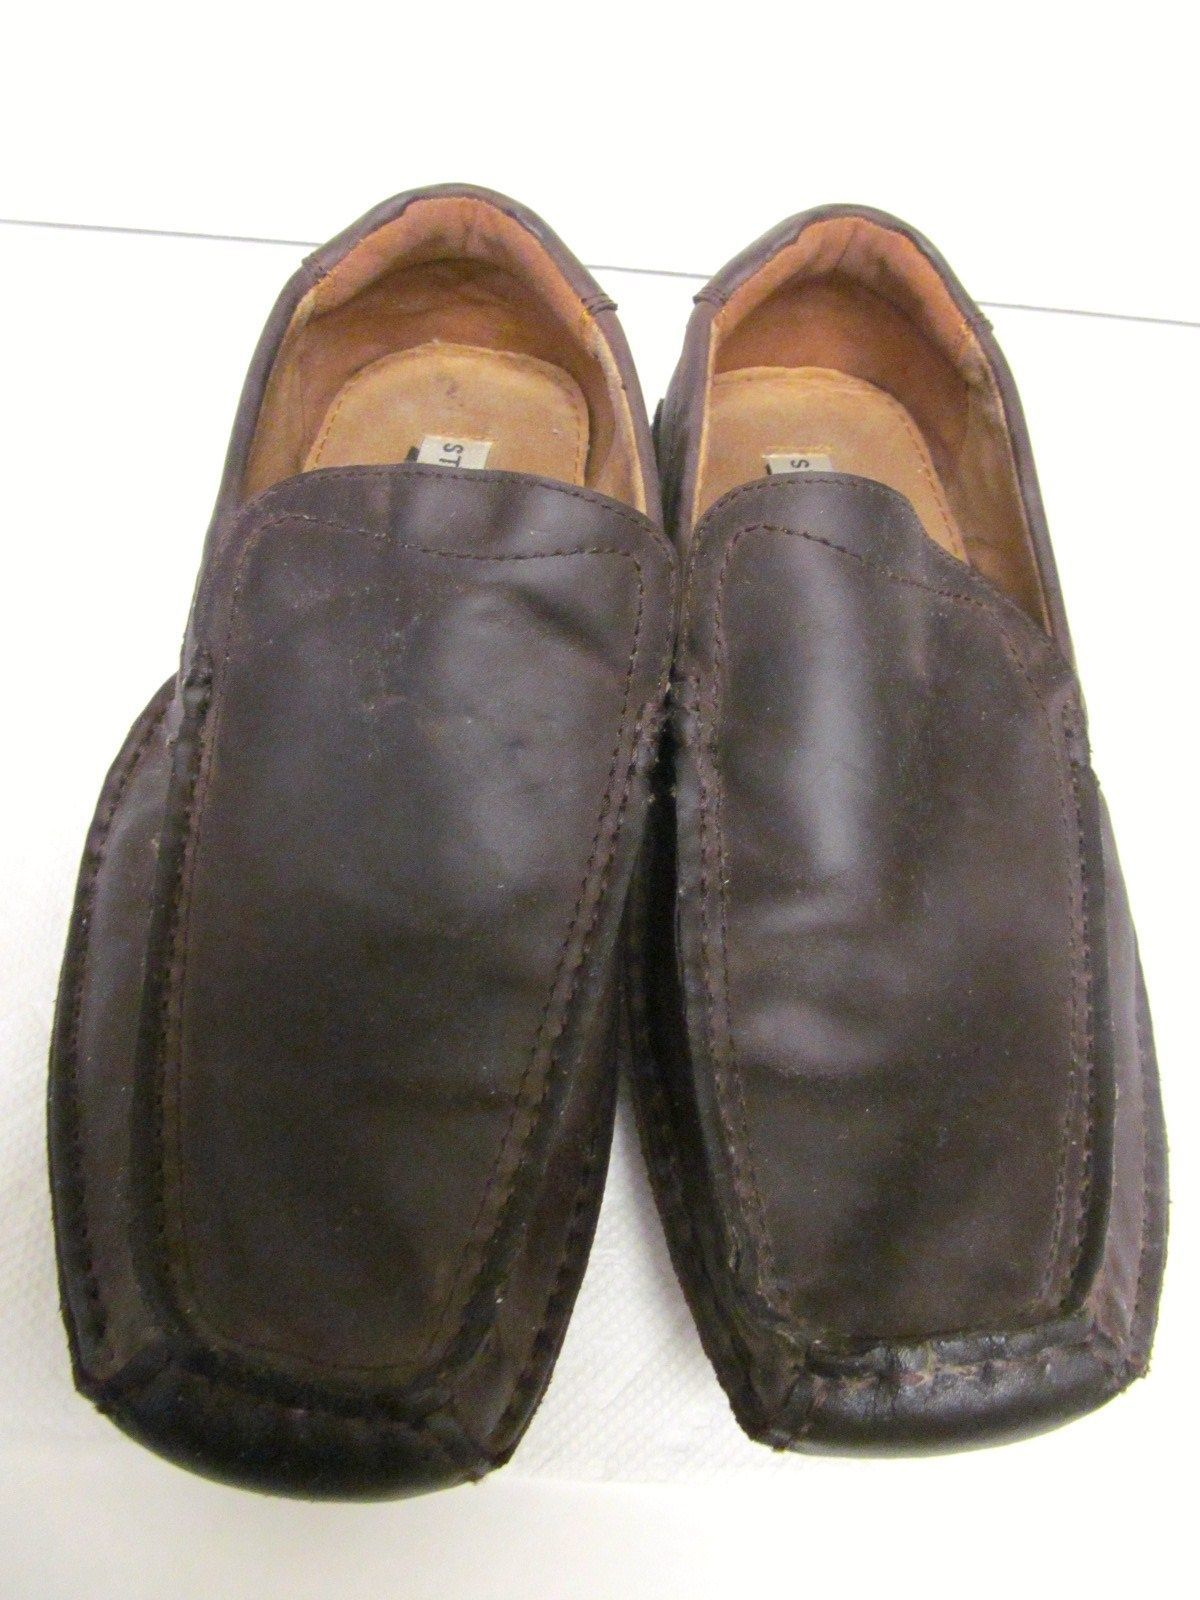 6bc8eb5ffc9 STEVE MADDEN Noted Leather Loafers Mocs Shoes Slip On Driving Brown Women s  8.5